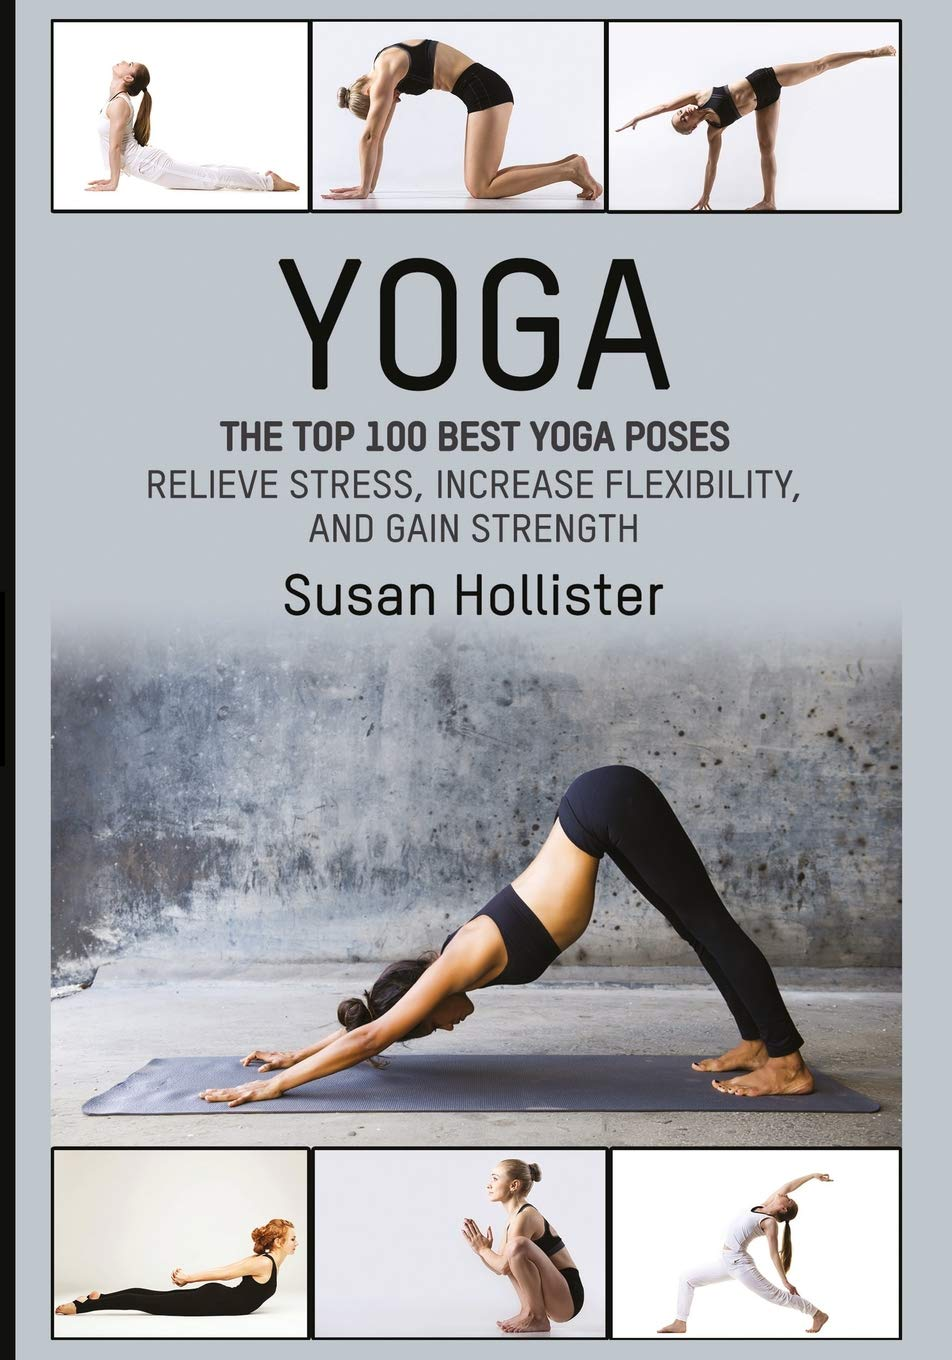 Yoga: The Top 100 Best Yoga Poses: Relieve Stress, Increase